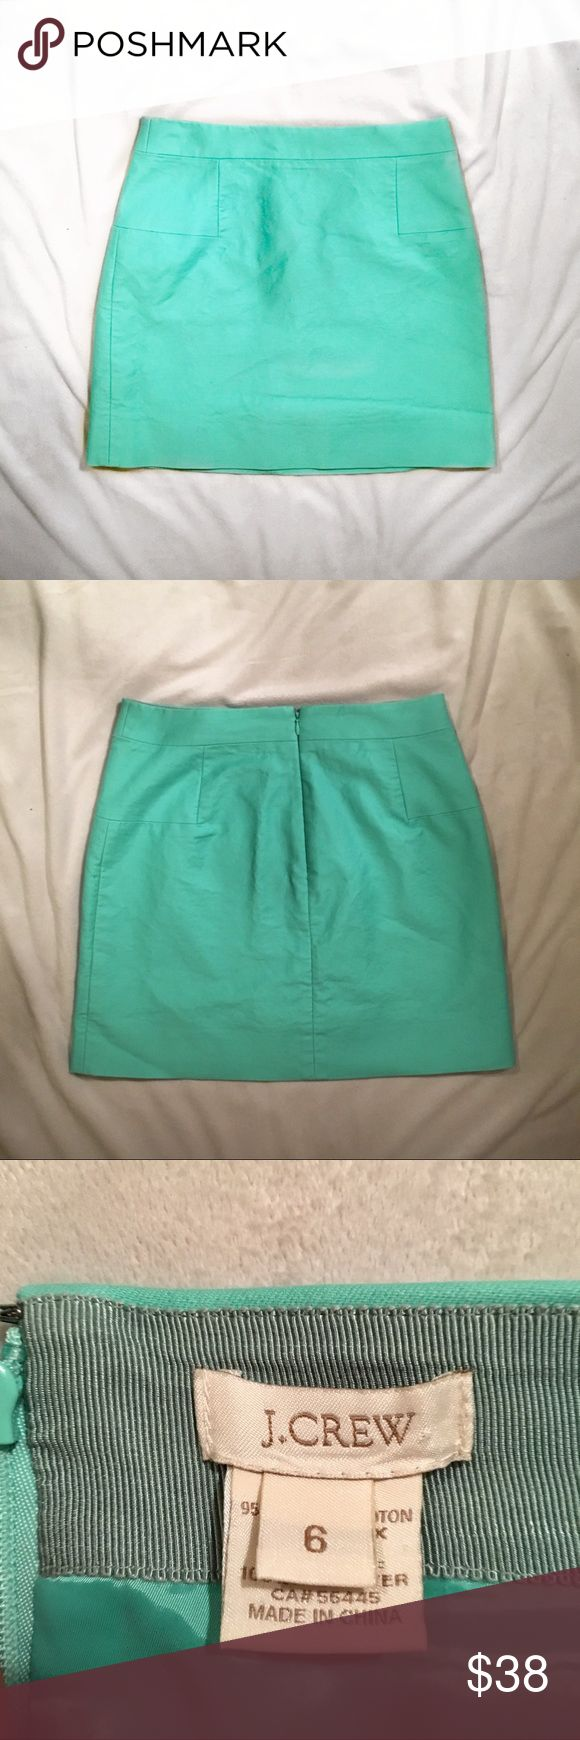 J. Crew teal mini skirt J. Crew turquoise mini skirt! Perfect to spring, especially Easter! In great condition! Only one flaw: there's tiny light blue pen mark. A few on the front and back. I pictured the ones on the back. There's a zipper down the back of the skirt.   Width: almost 15 inches Length 16.5 inches J. Crew Skirts Mini